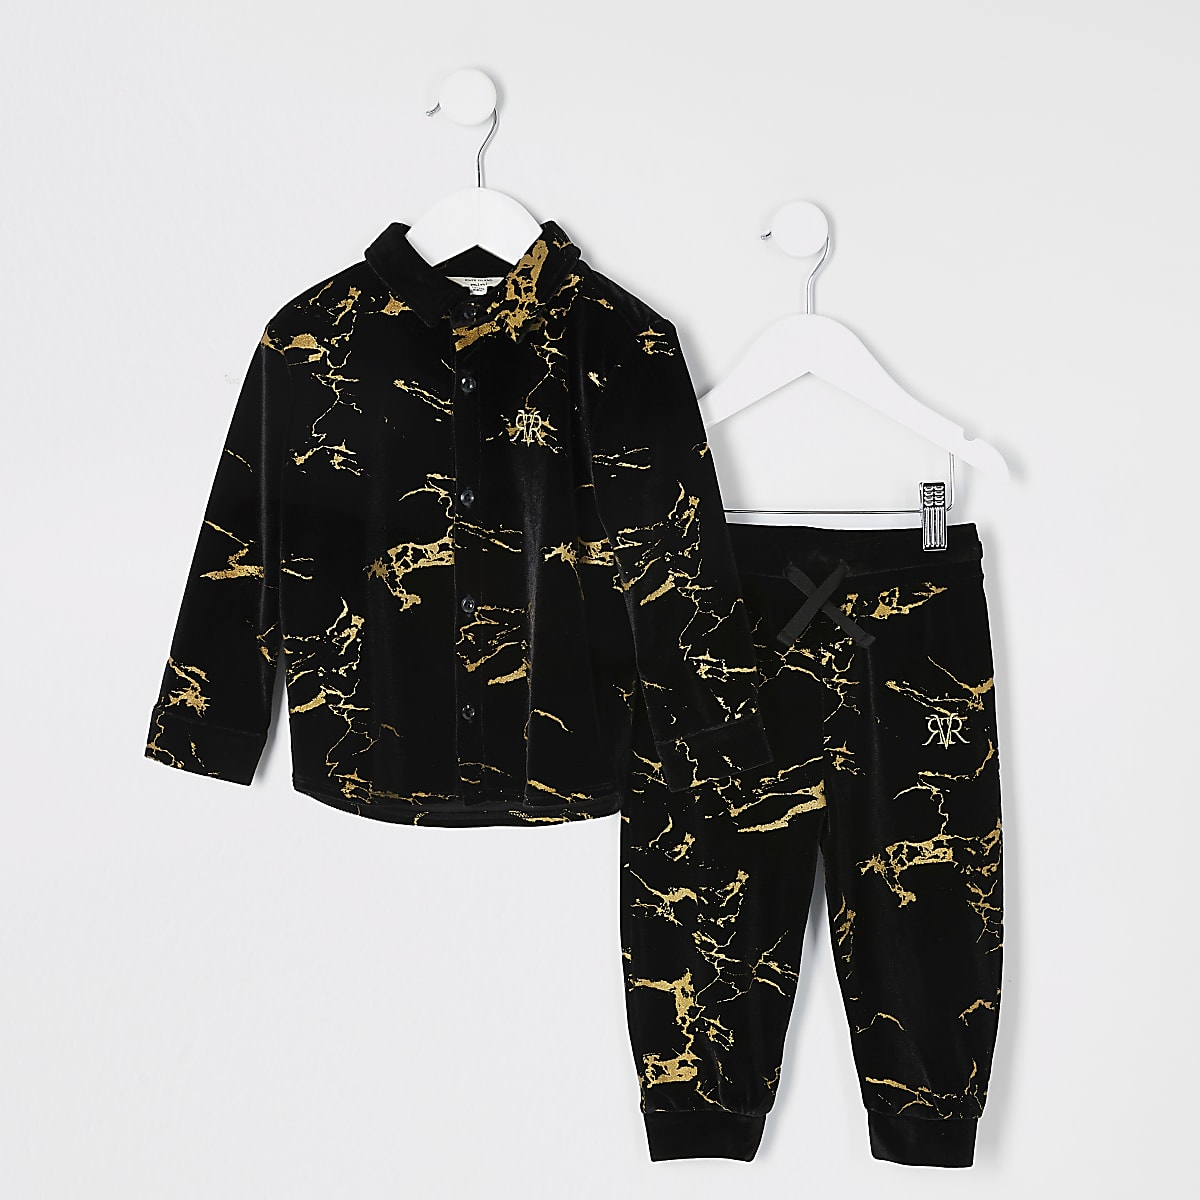 Mini boys black printed velour shirt outfit